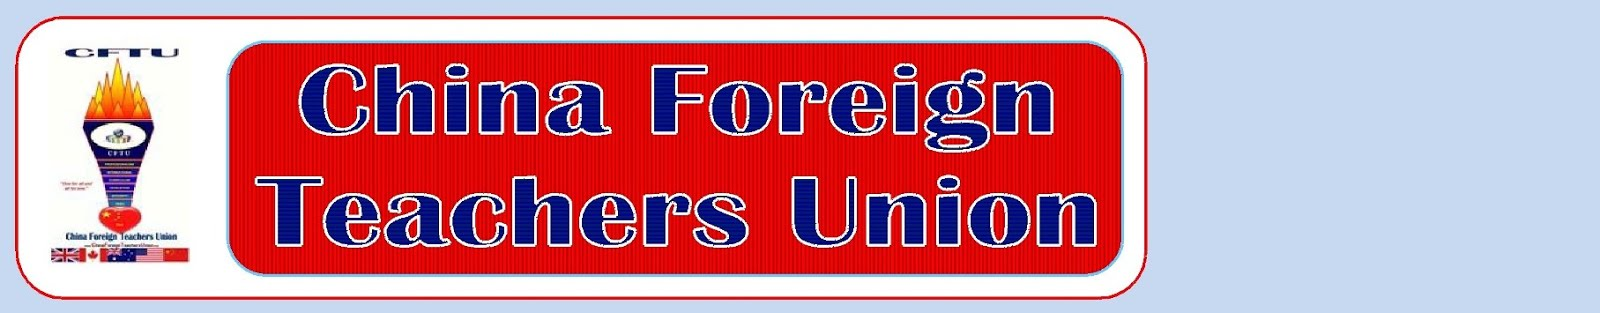 China in Asia (online): China Foreign Teachers Union (CFTU) - Website based volunteer organisation - China